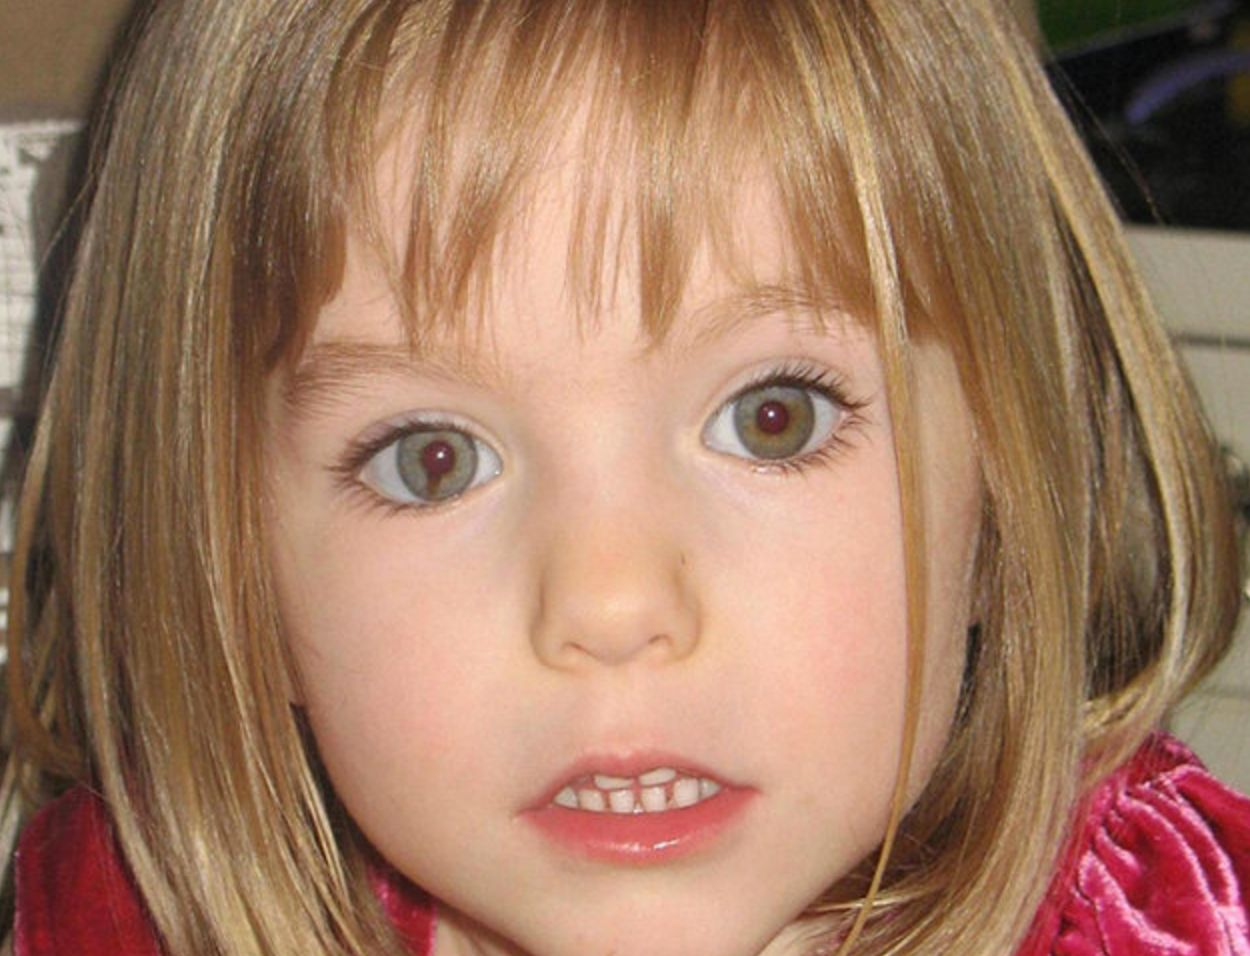 'Major' Madeleine McCann Breakthrough Claims Made By Australian TV